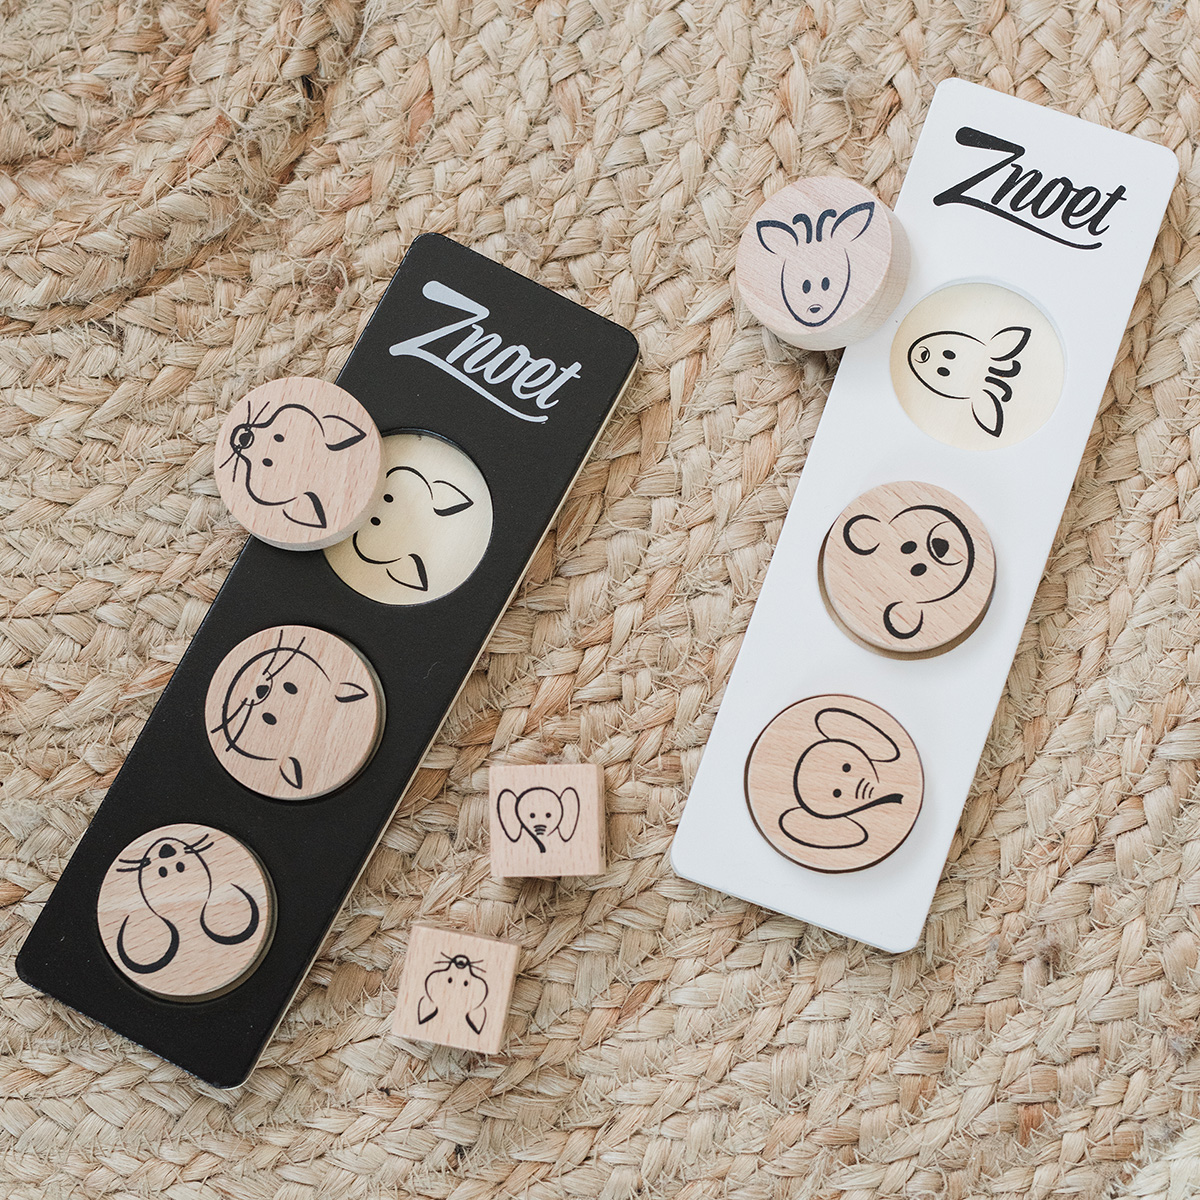 ZNOET LUCKY DICE GAME